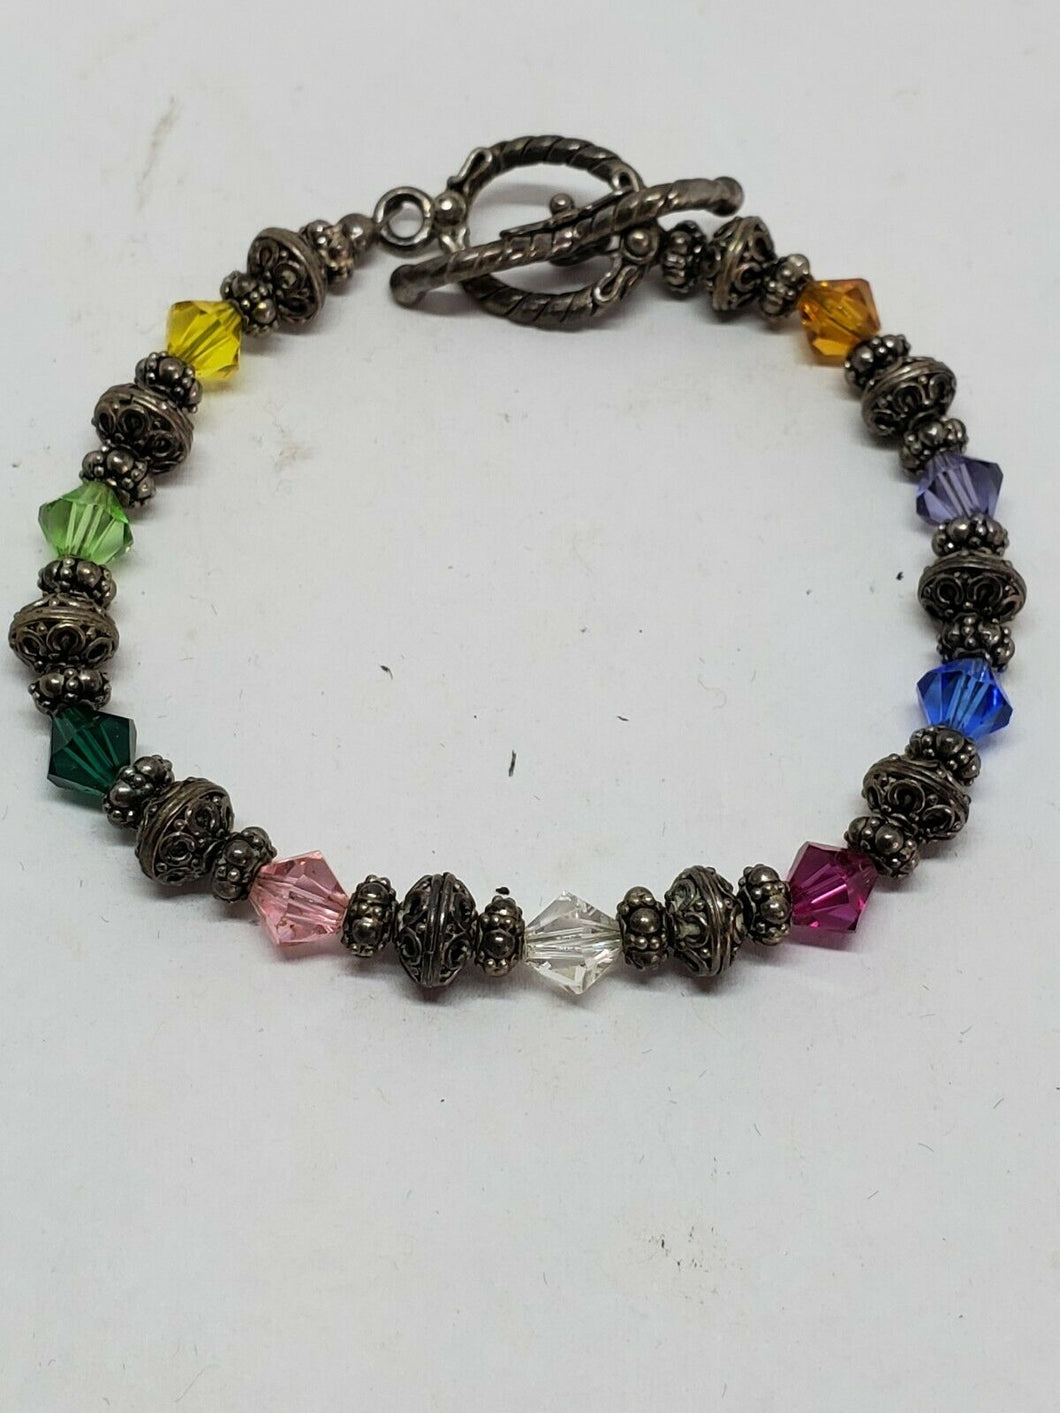 Sterling Silver Handmade Faceted Crystal Bicone And Sterling Bali Bead Bracelet